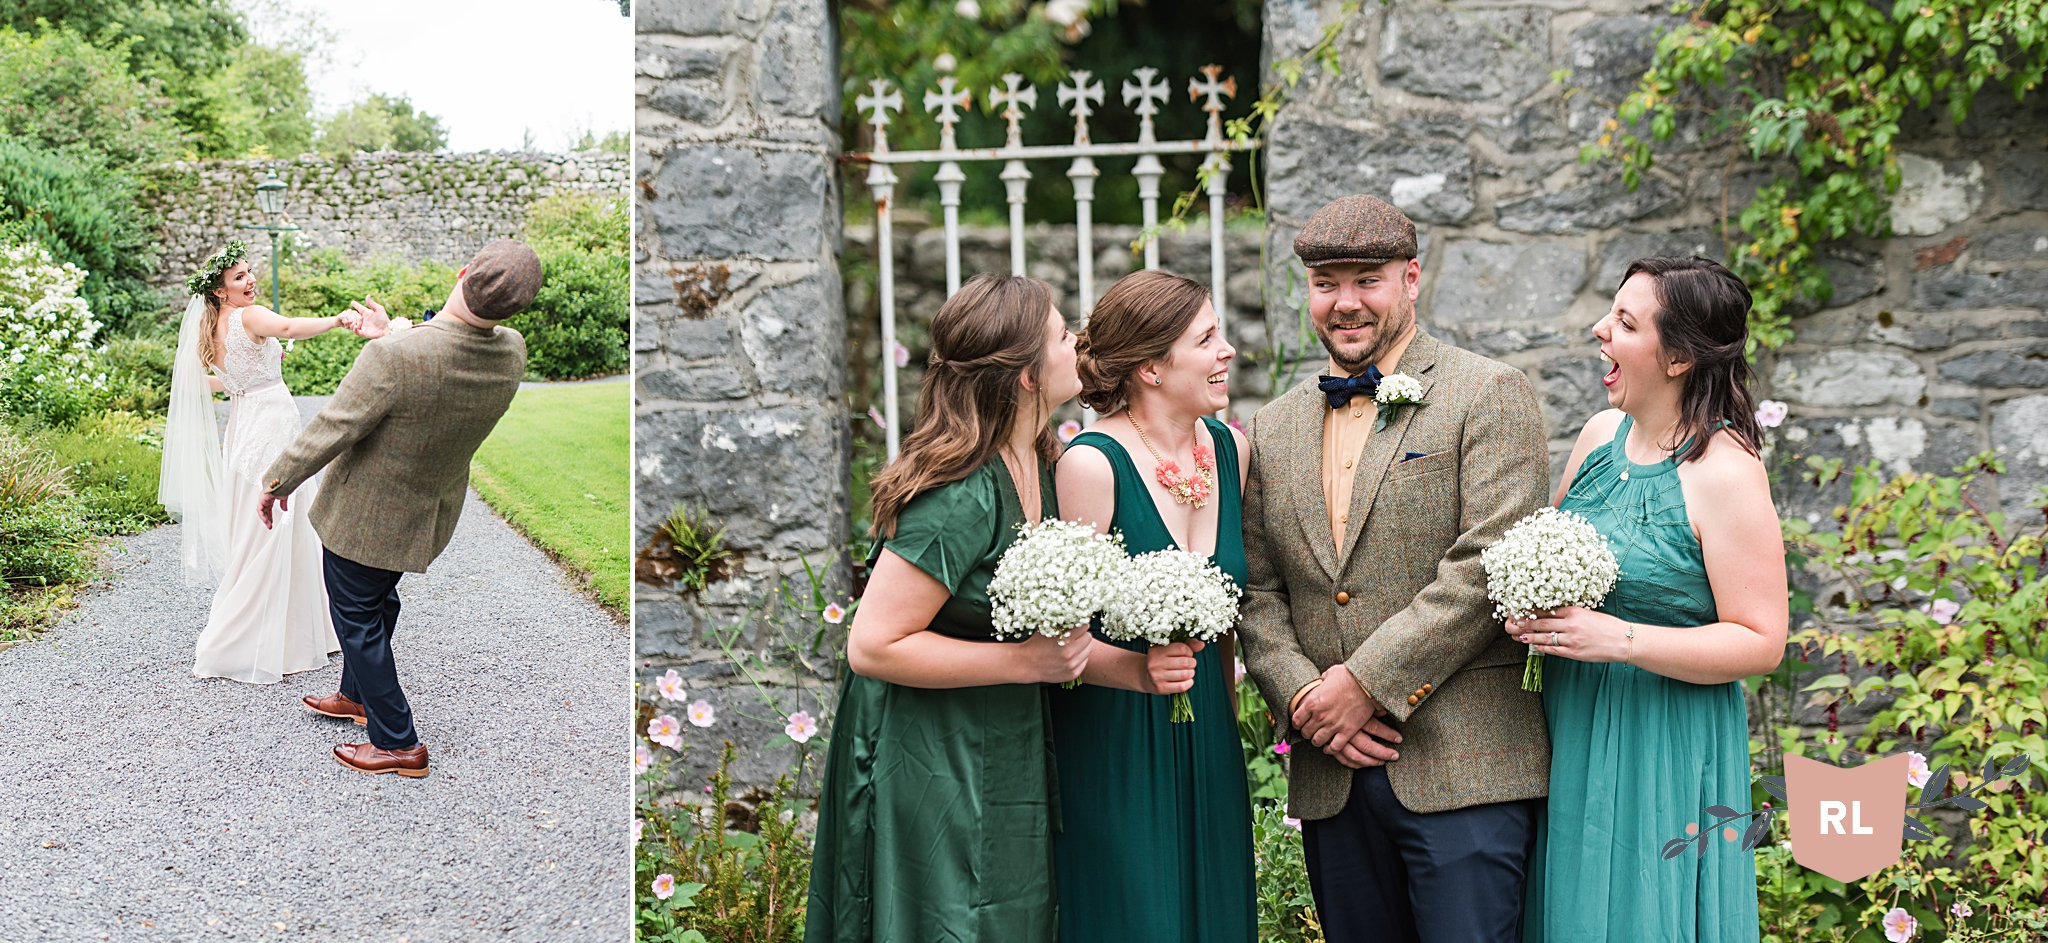 RossCastleWedding_Ireland_1006.jpg